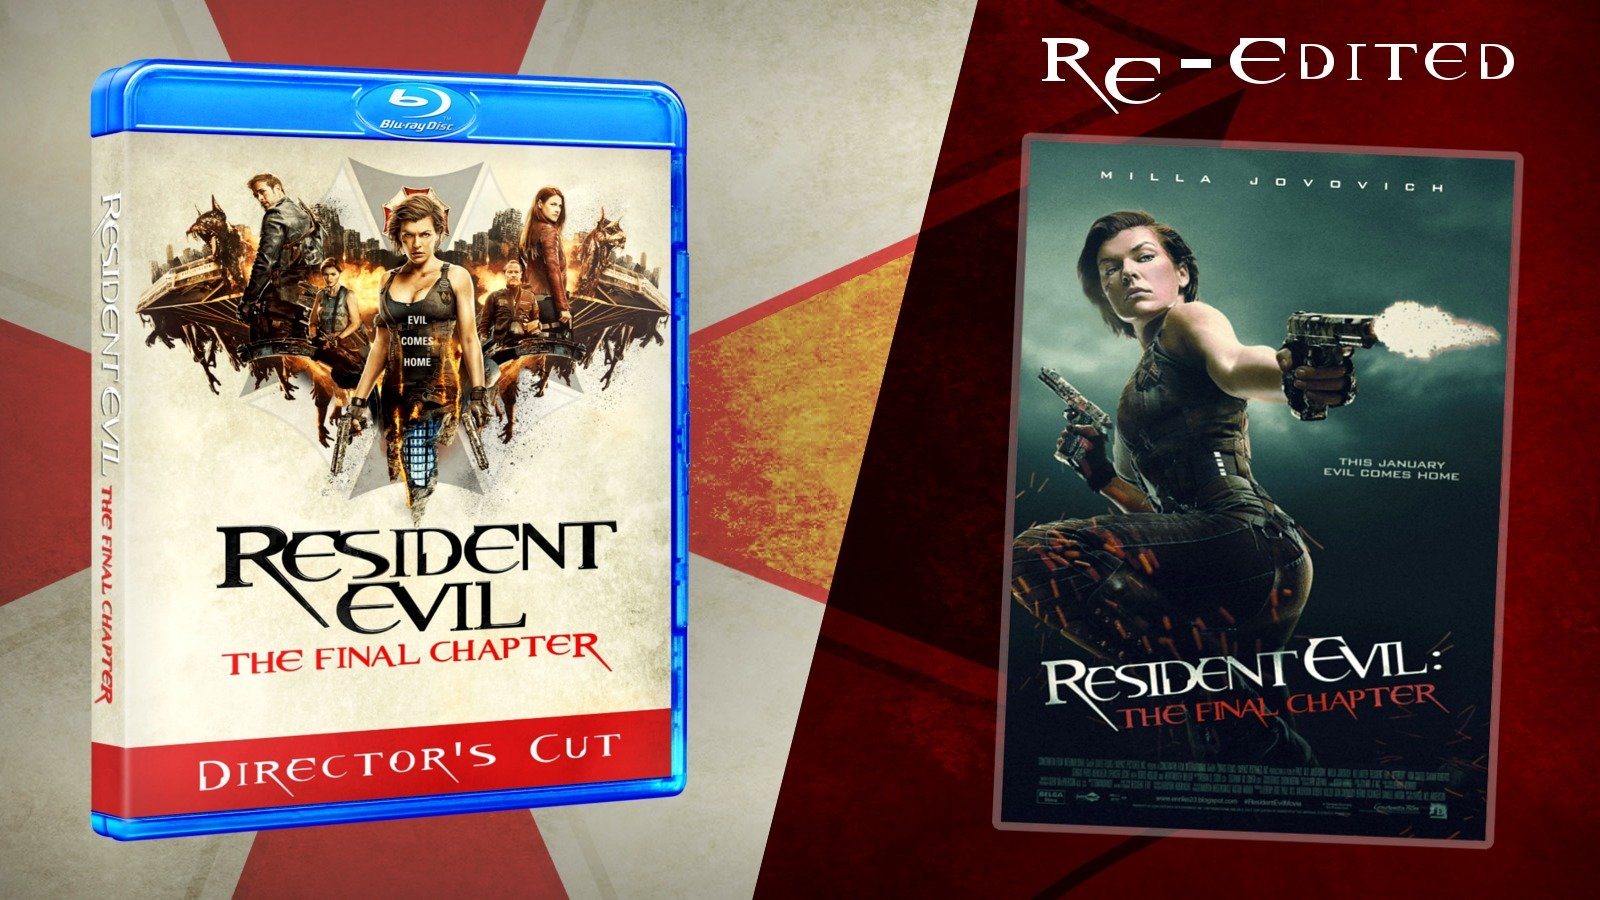 Petition Paul Ws Anderson Re Edit Resident Evil The